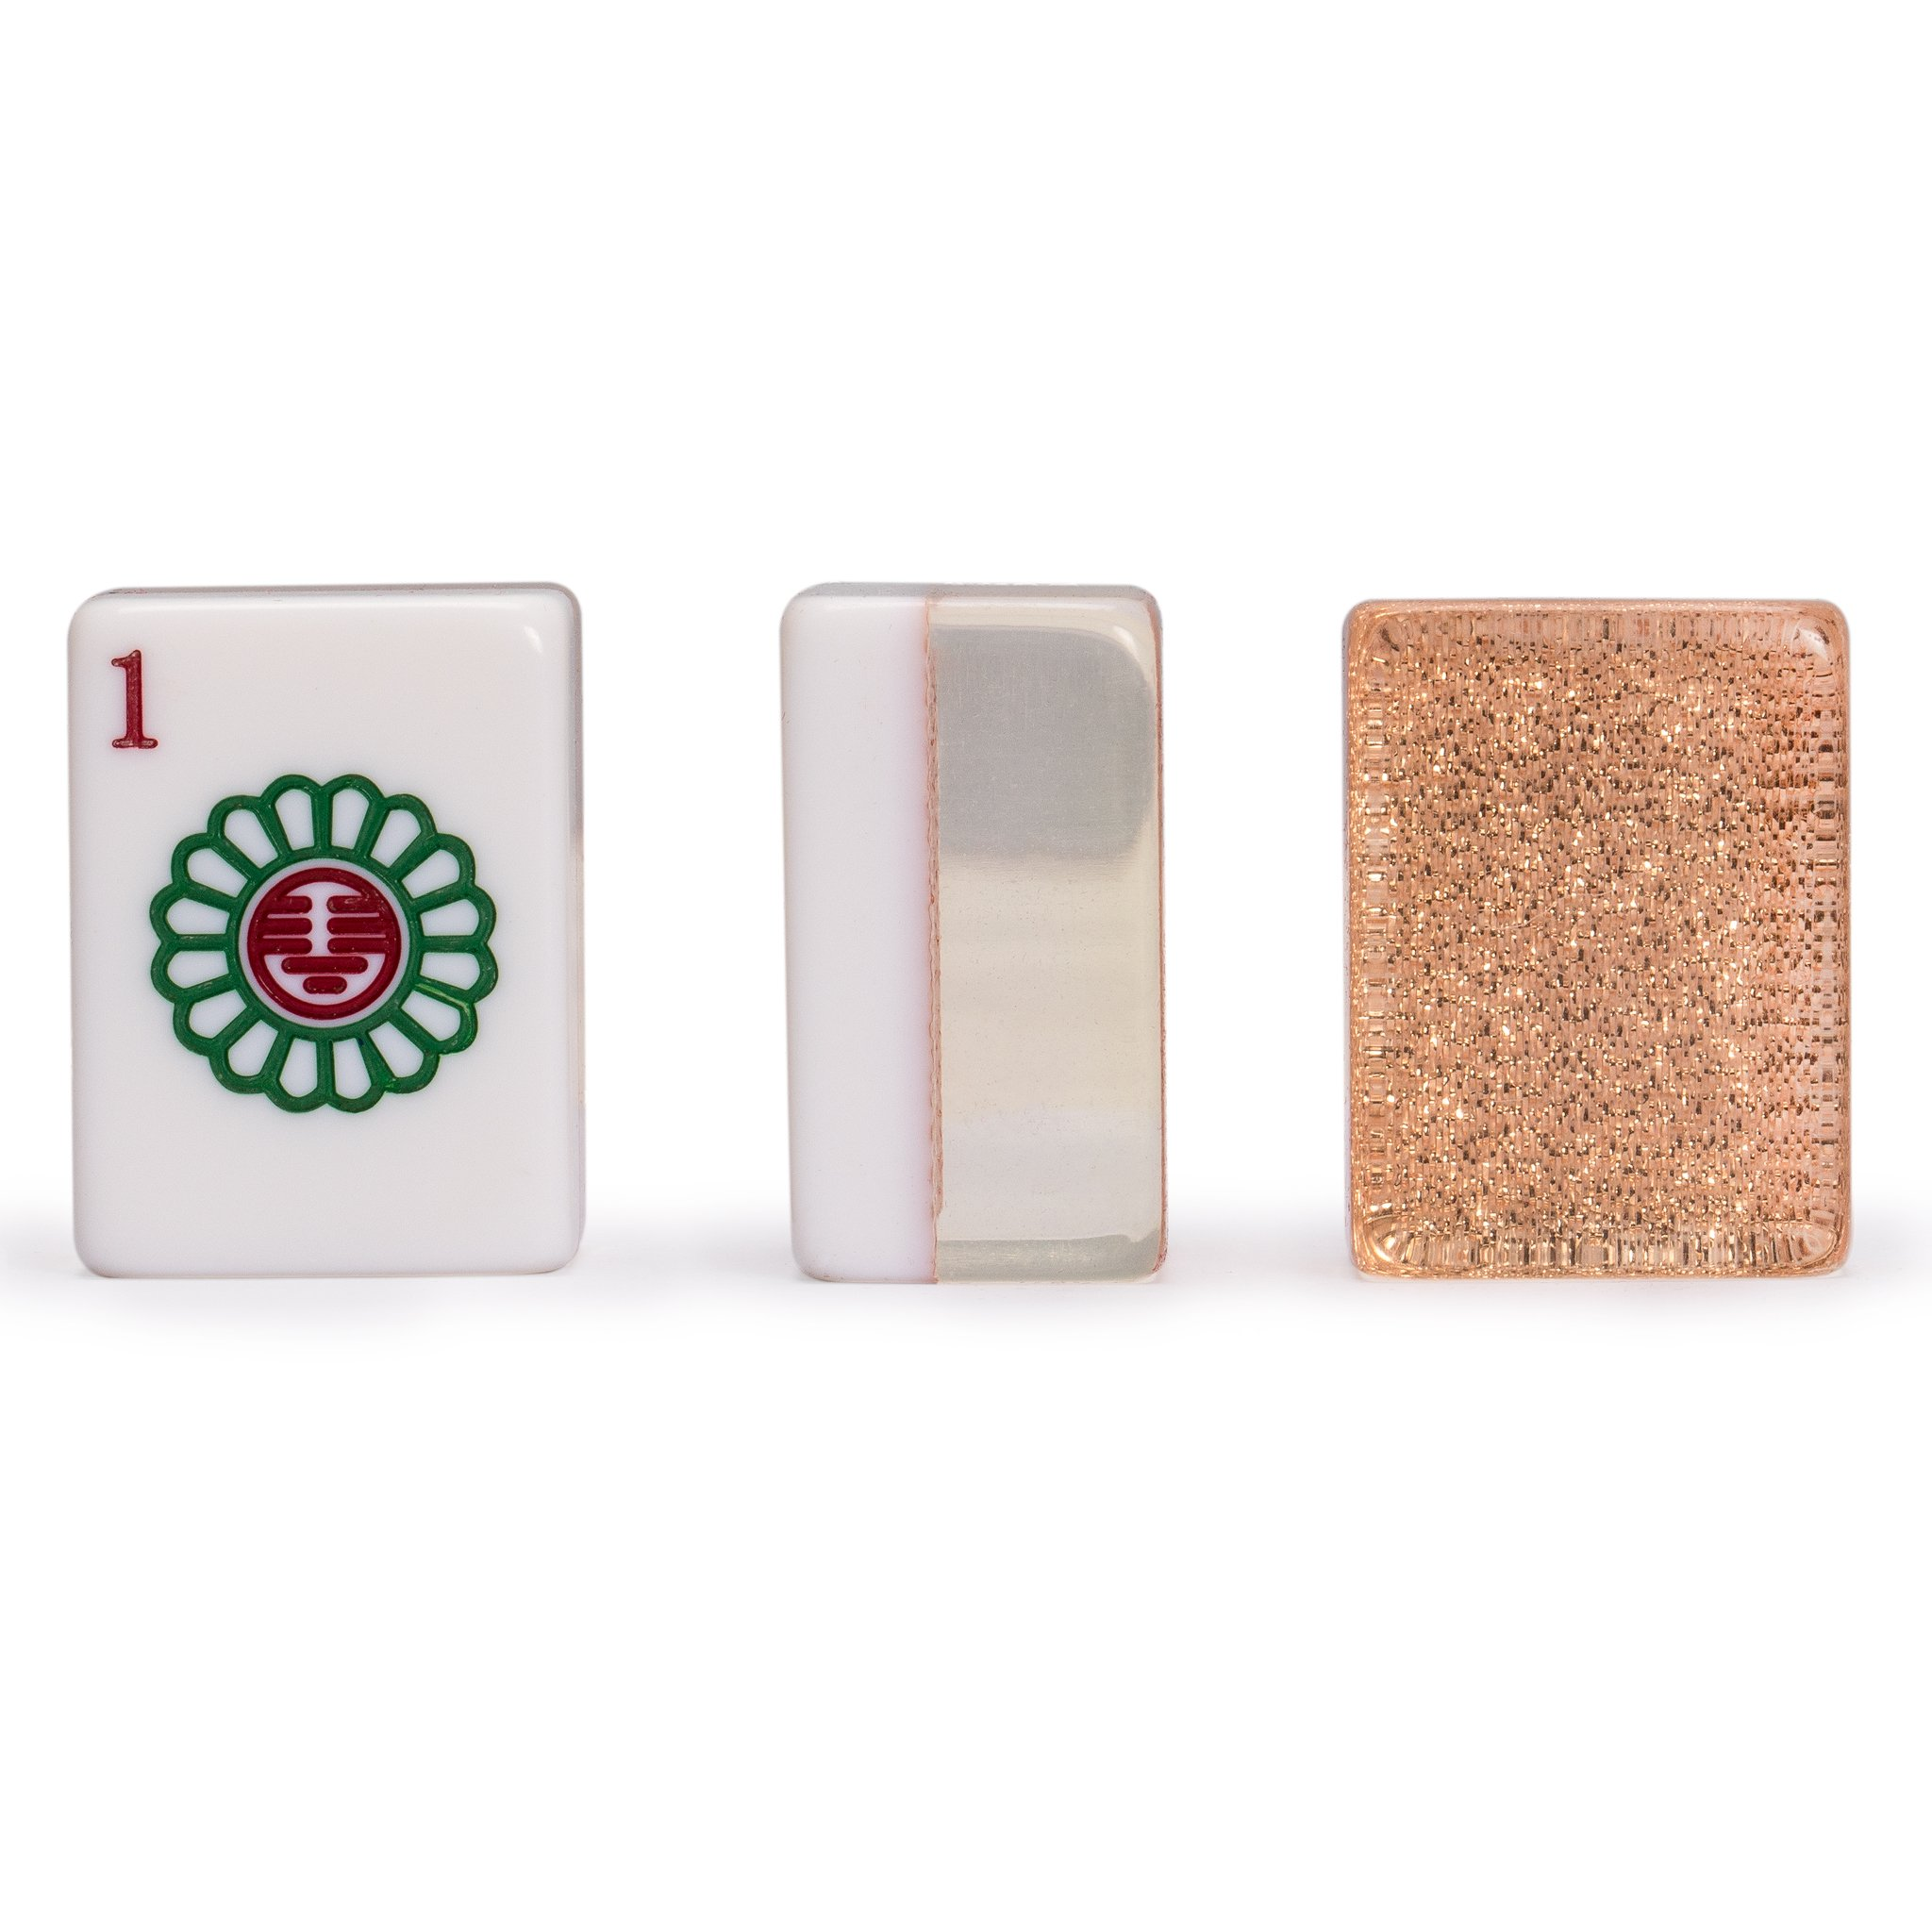 Yellow Mountain Imports Chinese Mahjong Set, Champagne Gold - with Wood Veneer Case - Medium Size Tiles: 1.3 x 1 x 0.7 inches (34mm x 25mm x 19mm) - for Chinese Style Gameplay Only by Yellow Mountain Imports (Image #5)